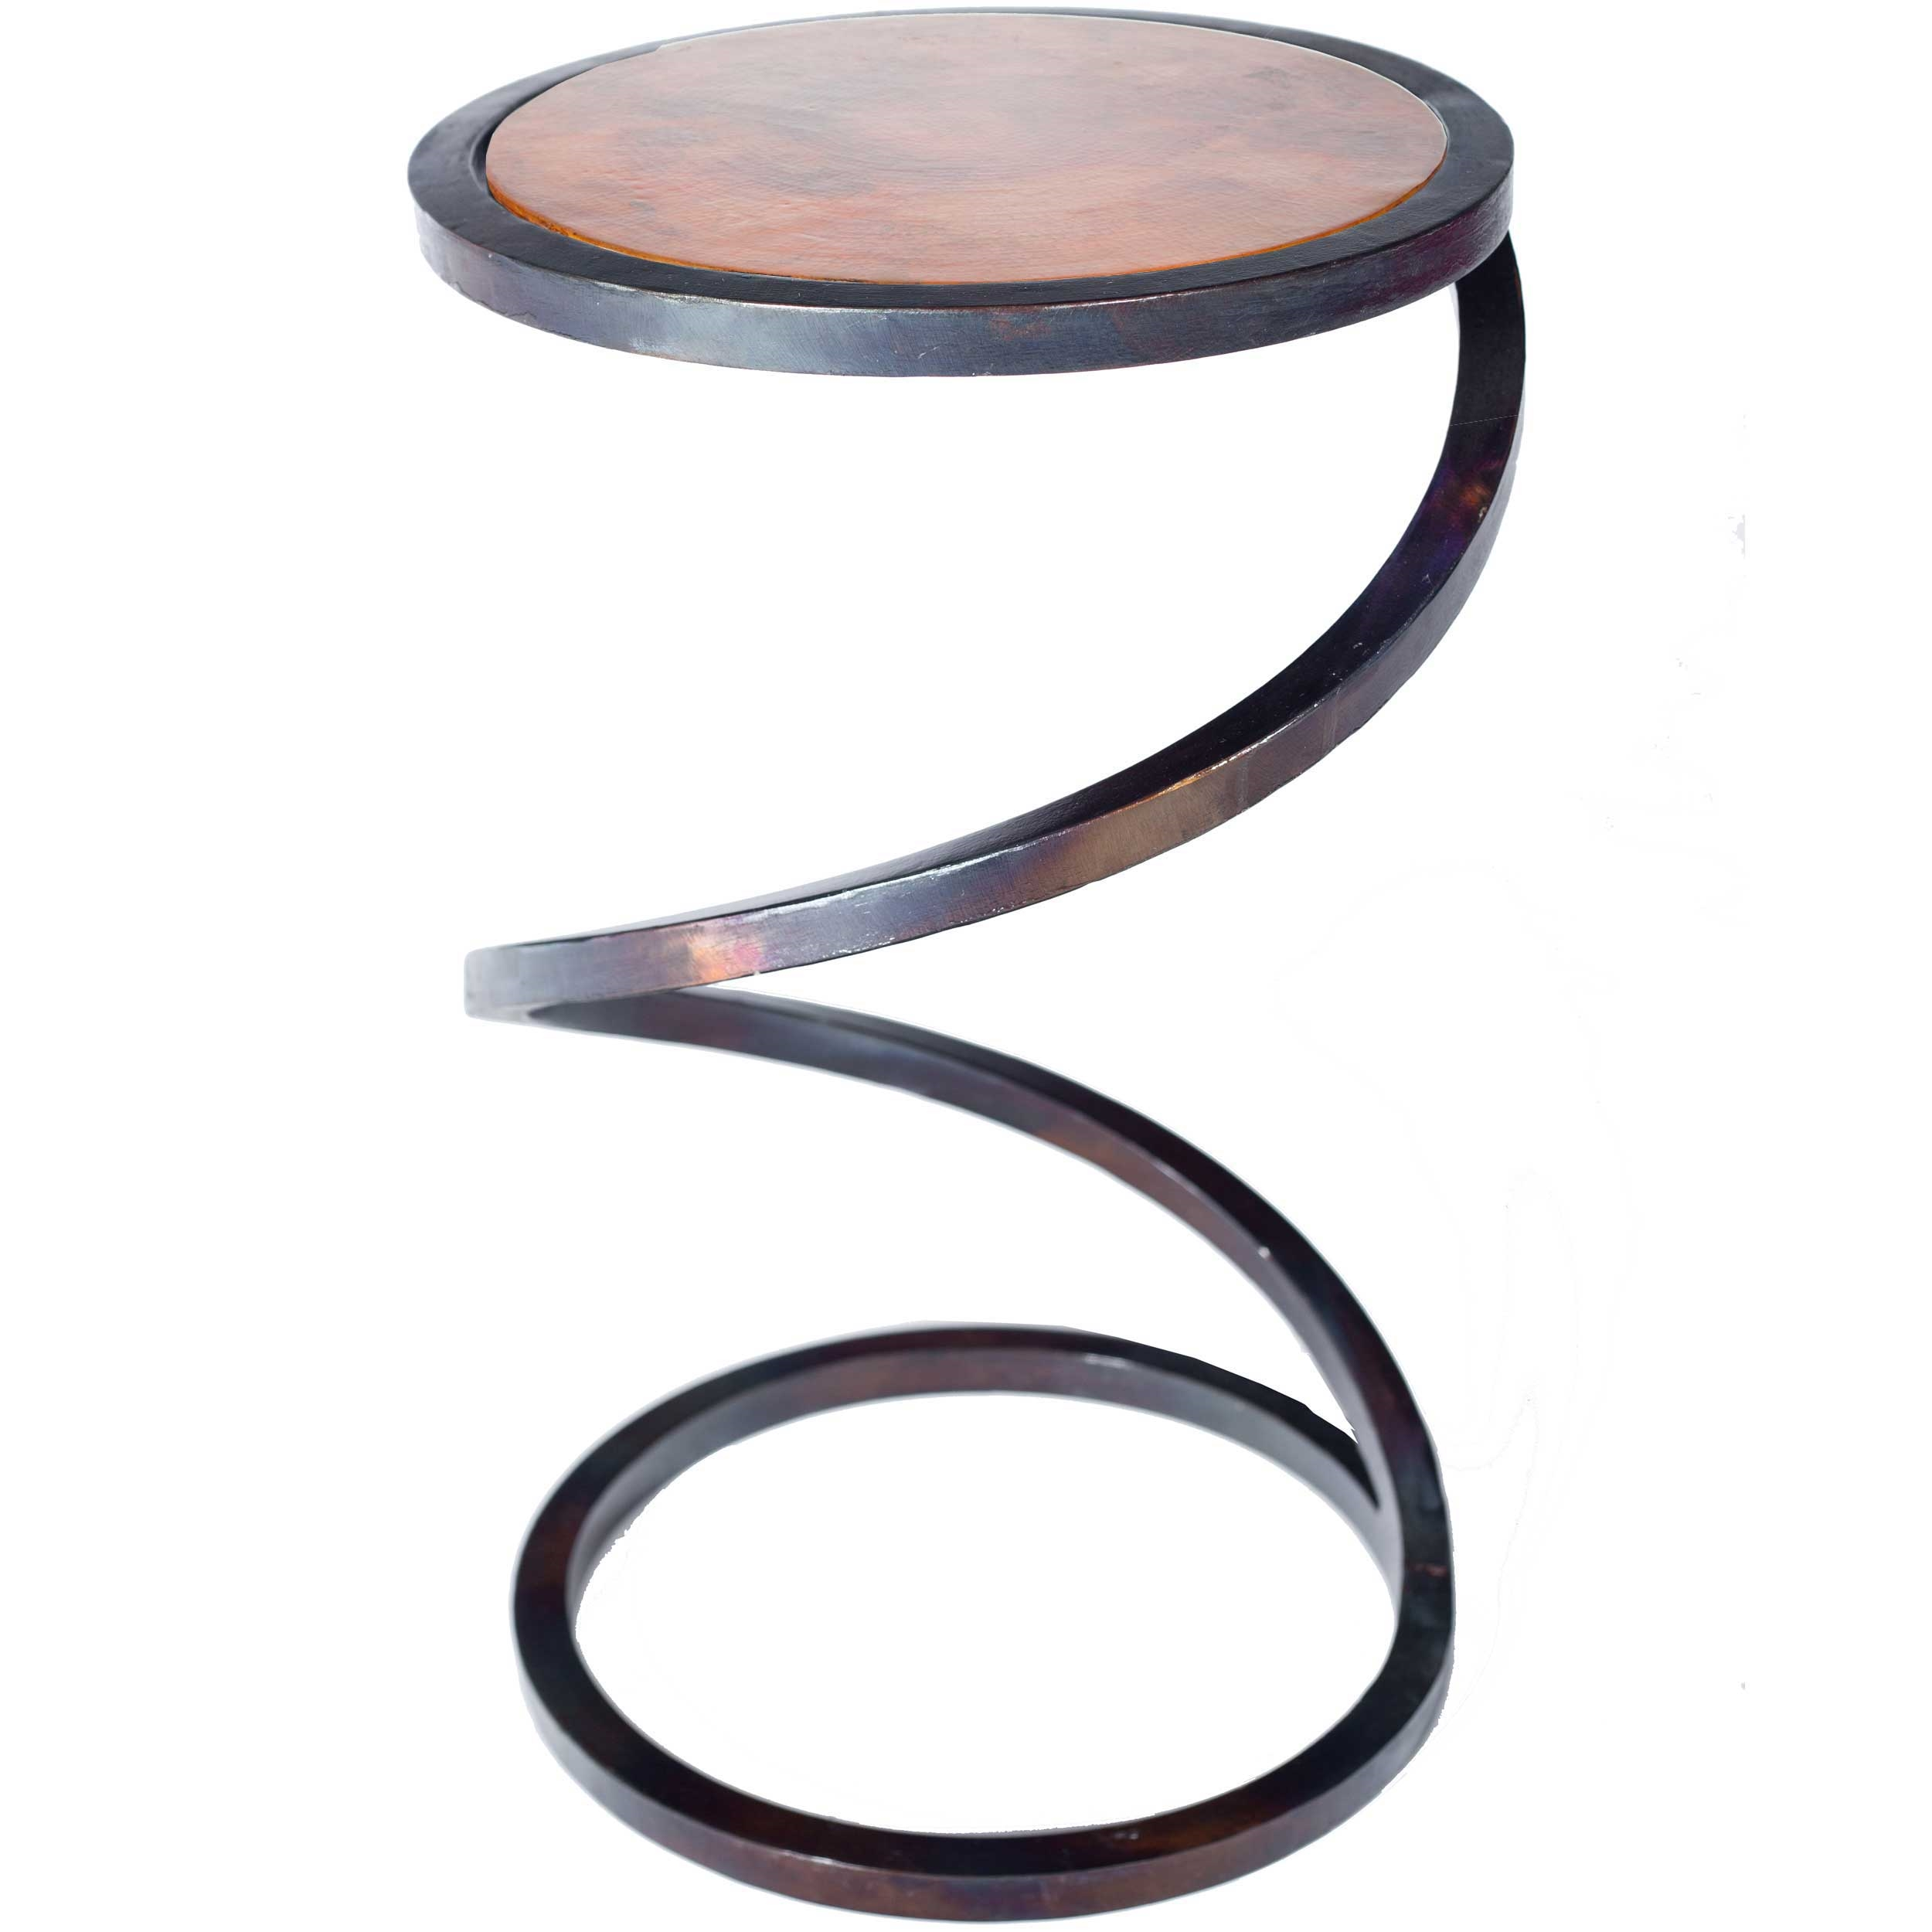 spiral round iron accent table with hammered copper top twi metal wrought base and larger legs outdoor bar set expanding fold new home decoration folding chairs bunnings tables